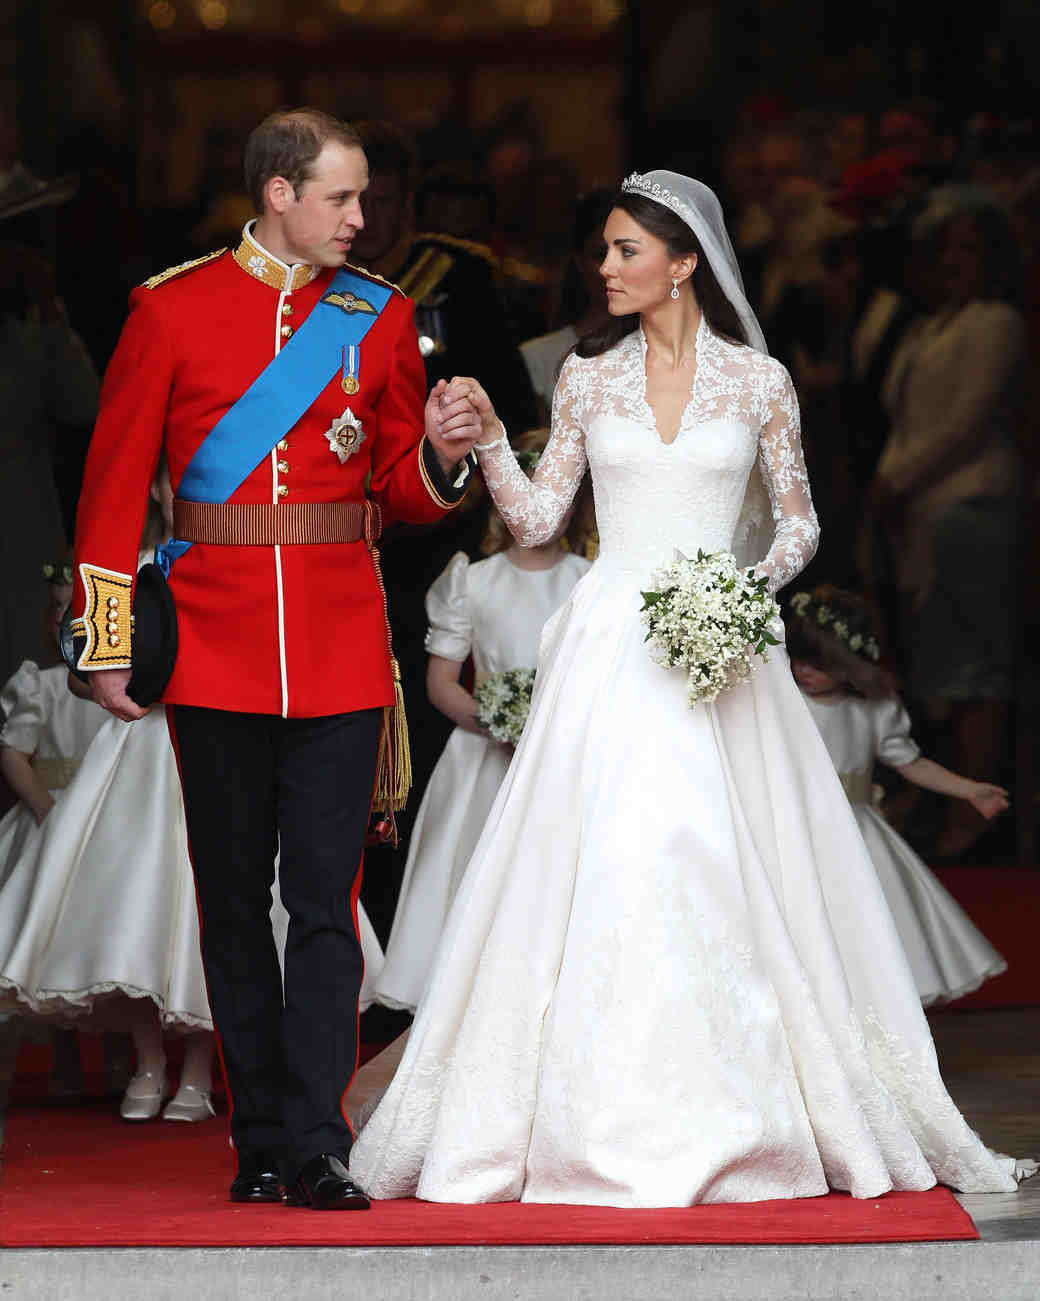 The 15 best royal wedding dresses of all time martha stewart weddings catherine duchess of cambridge junglespirit Images